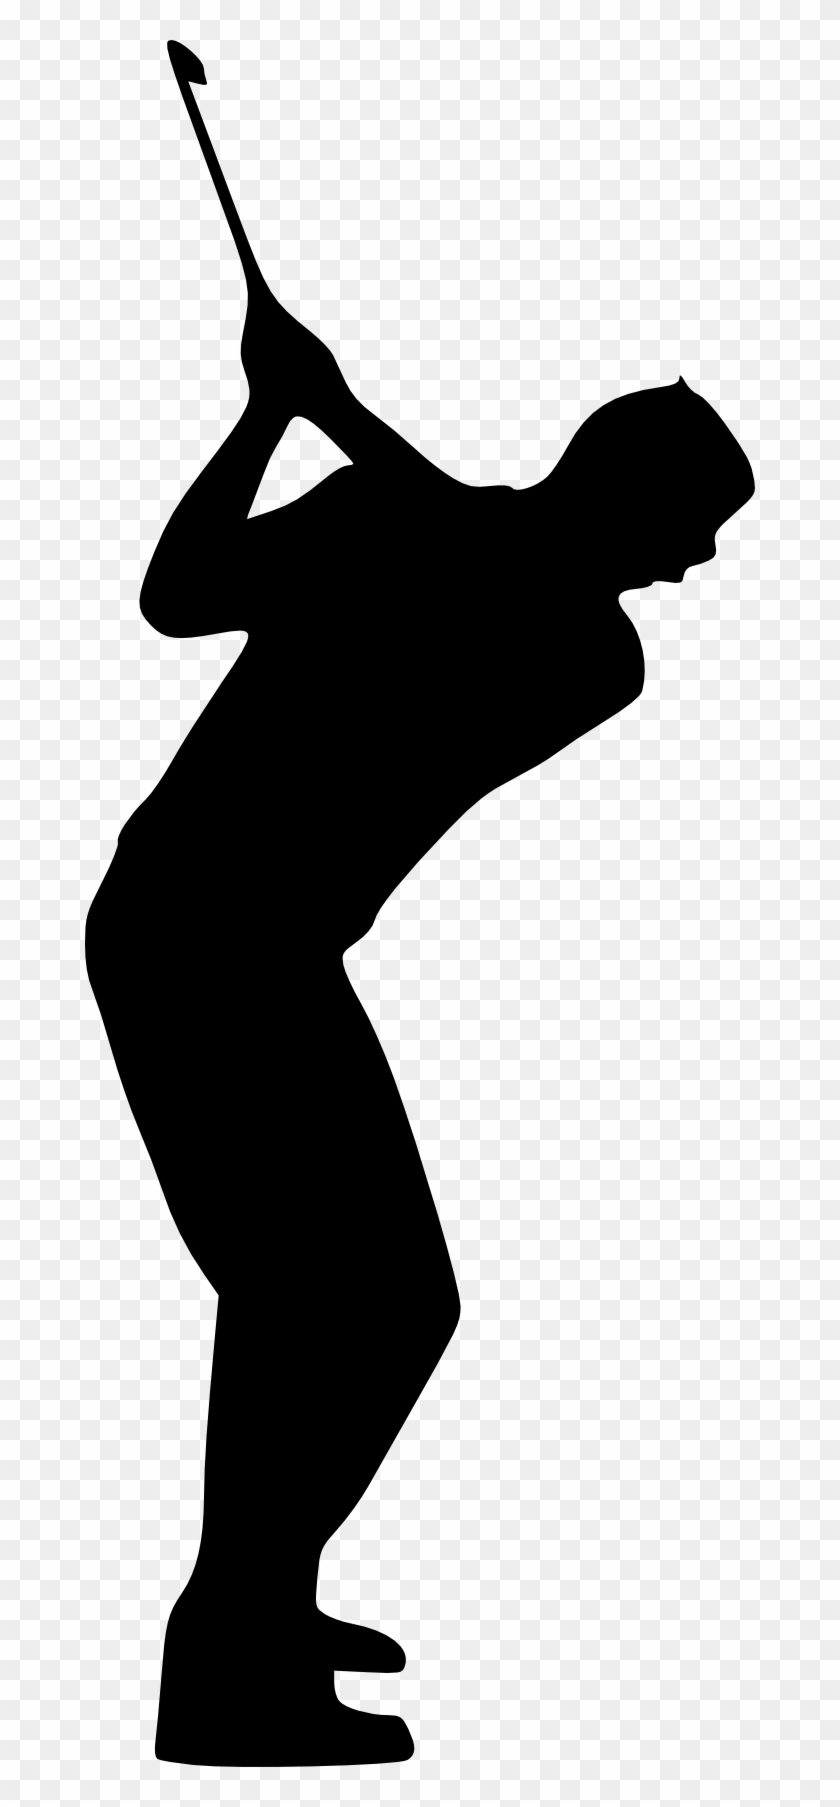 sun silhouette vector golfer silhouette png free transparent png